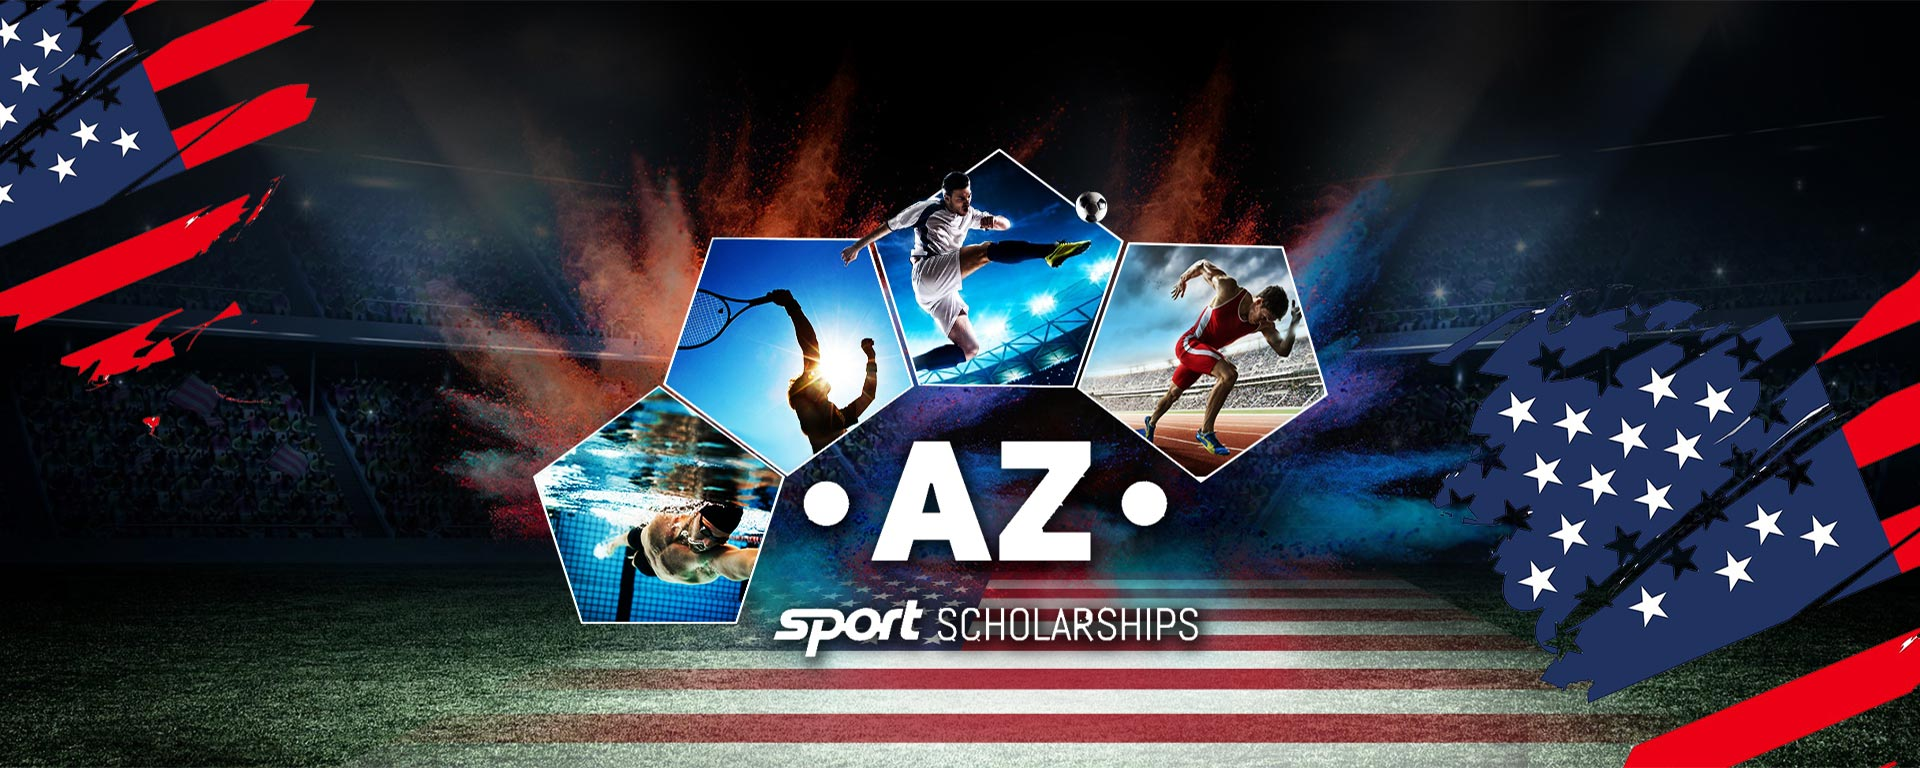 AZ Sport Scholarships - From A to Z How To Sport And Study In The USA